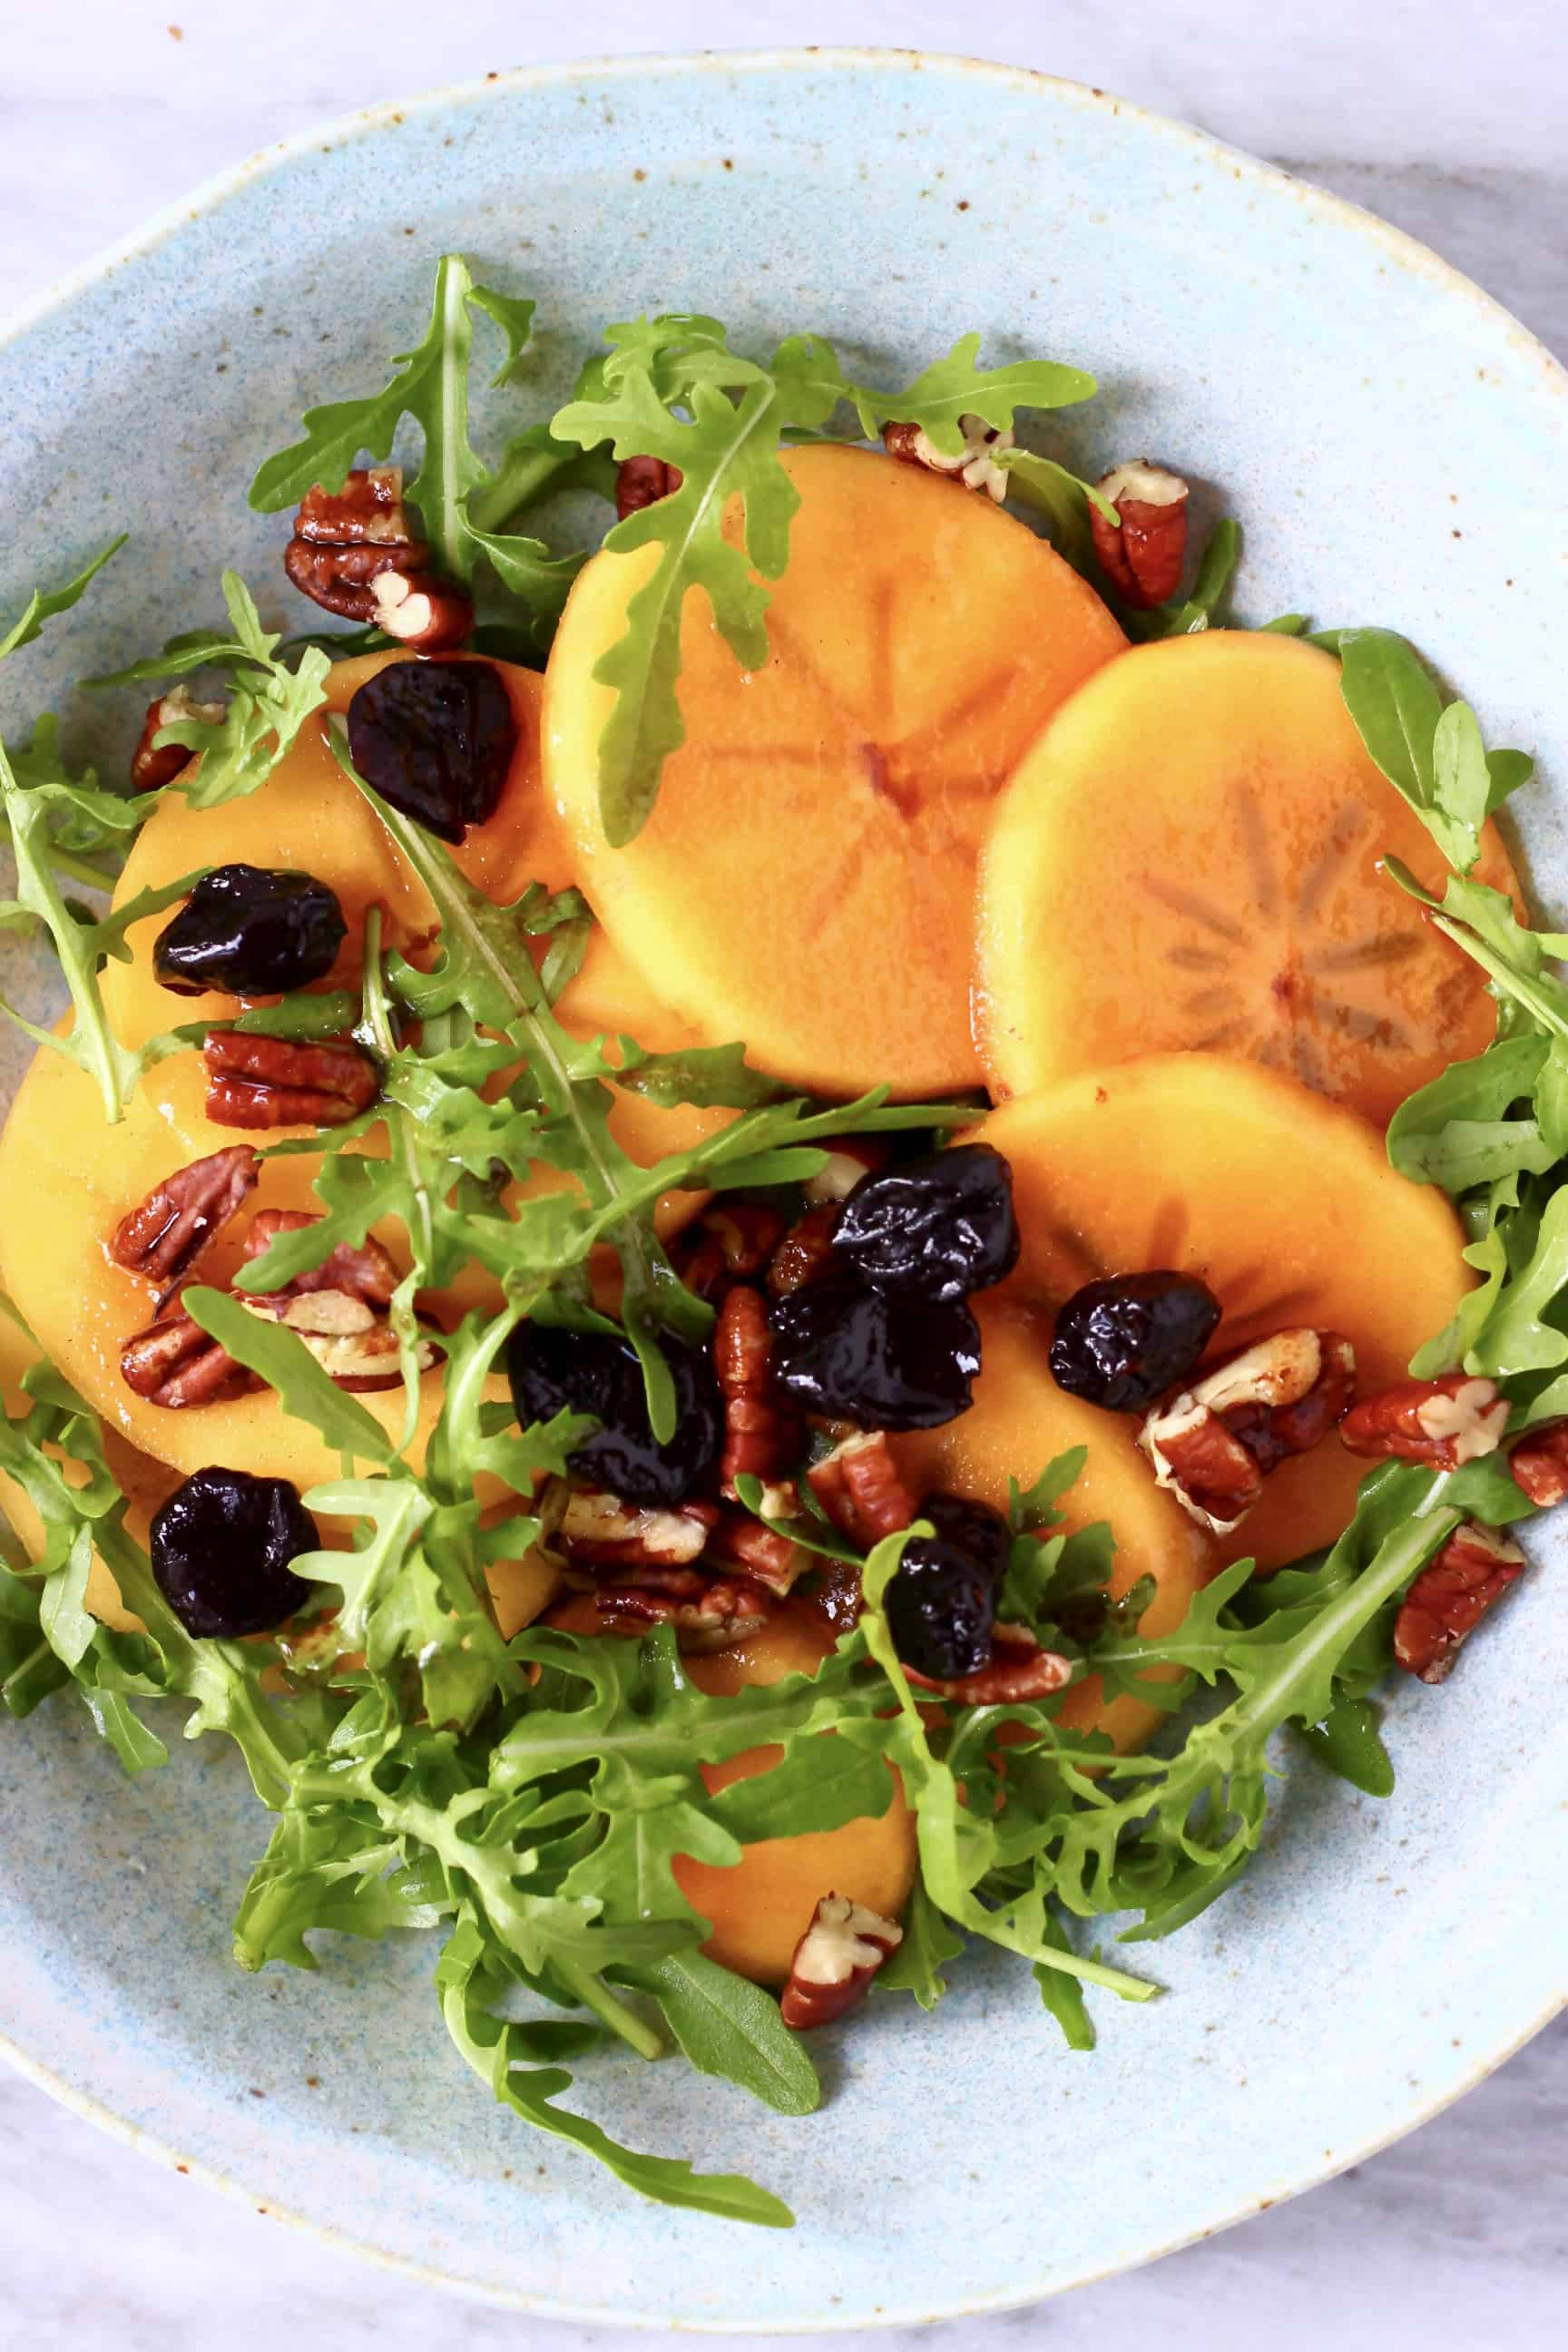 Persimmon salad in a blue bowl against a marble background